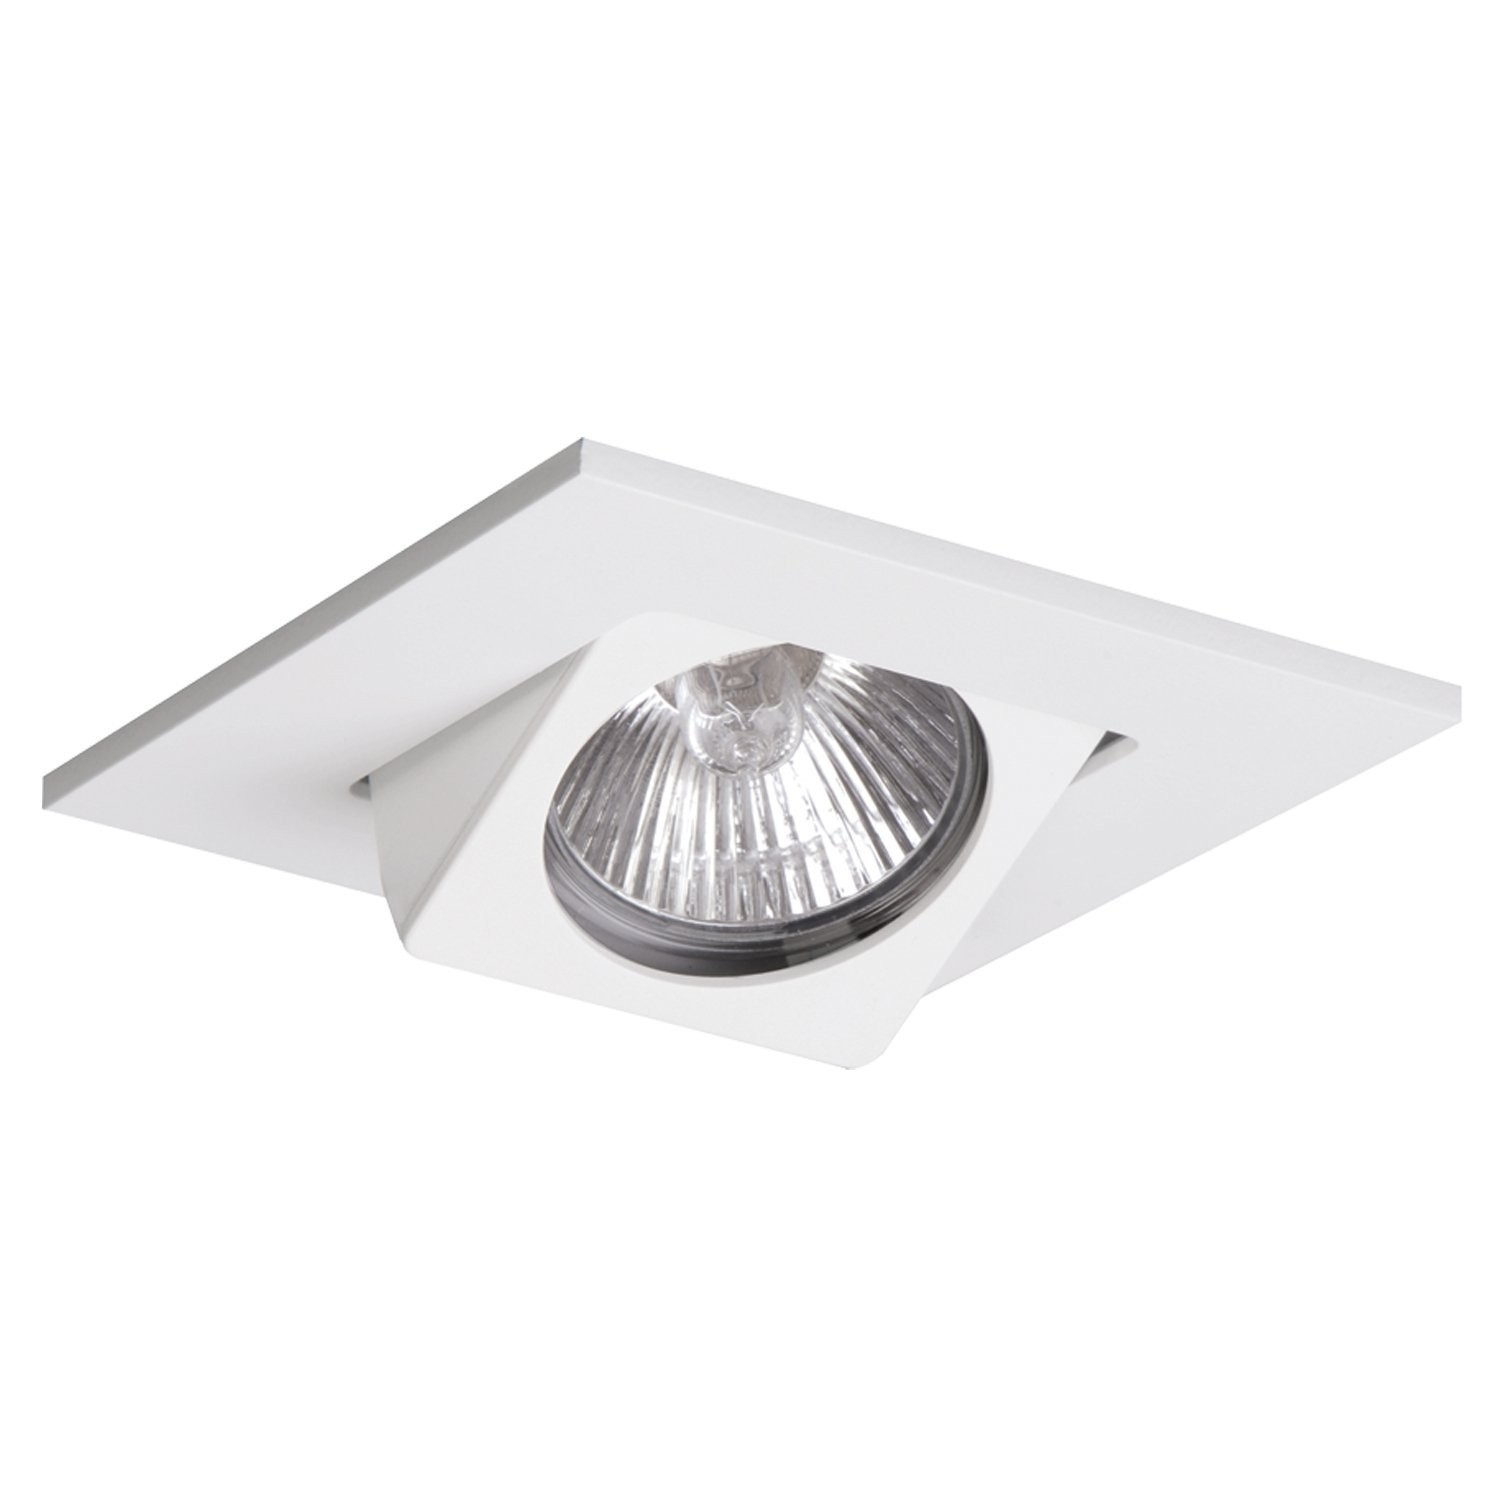 Halo 3013wh recessed lighting trim 3 adjustable gimbal square halo 3013wh recessed lighting trim 3 adjustable gimbal square trim white mozeypictures Image collections